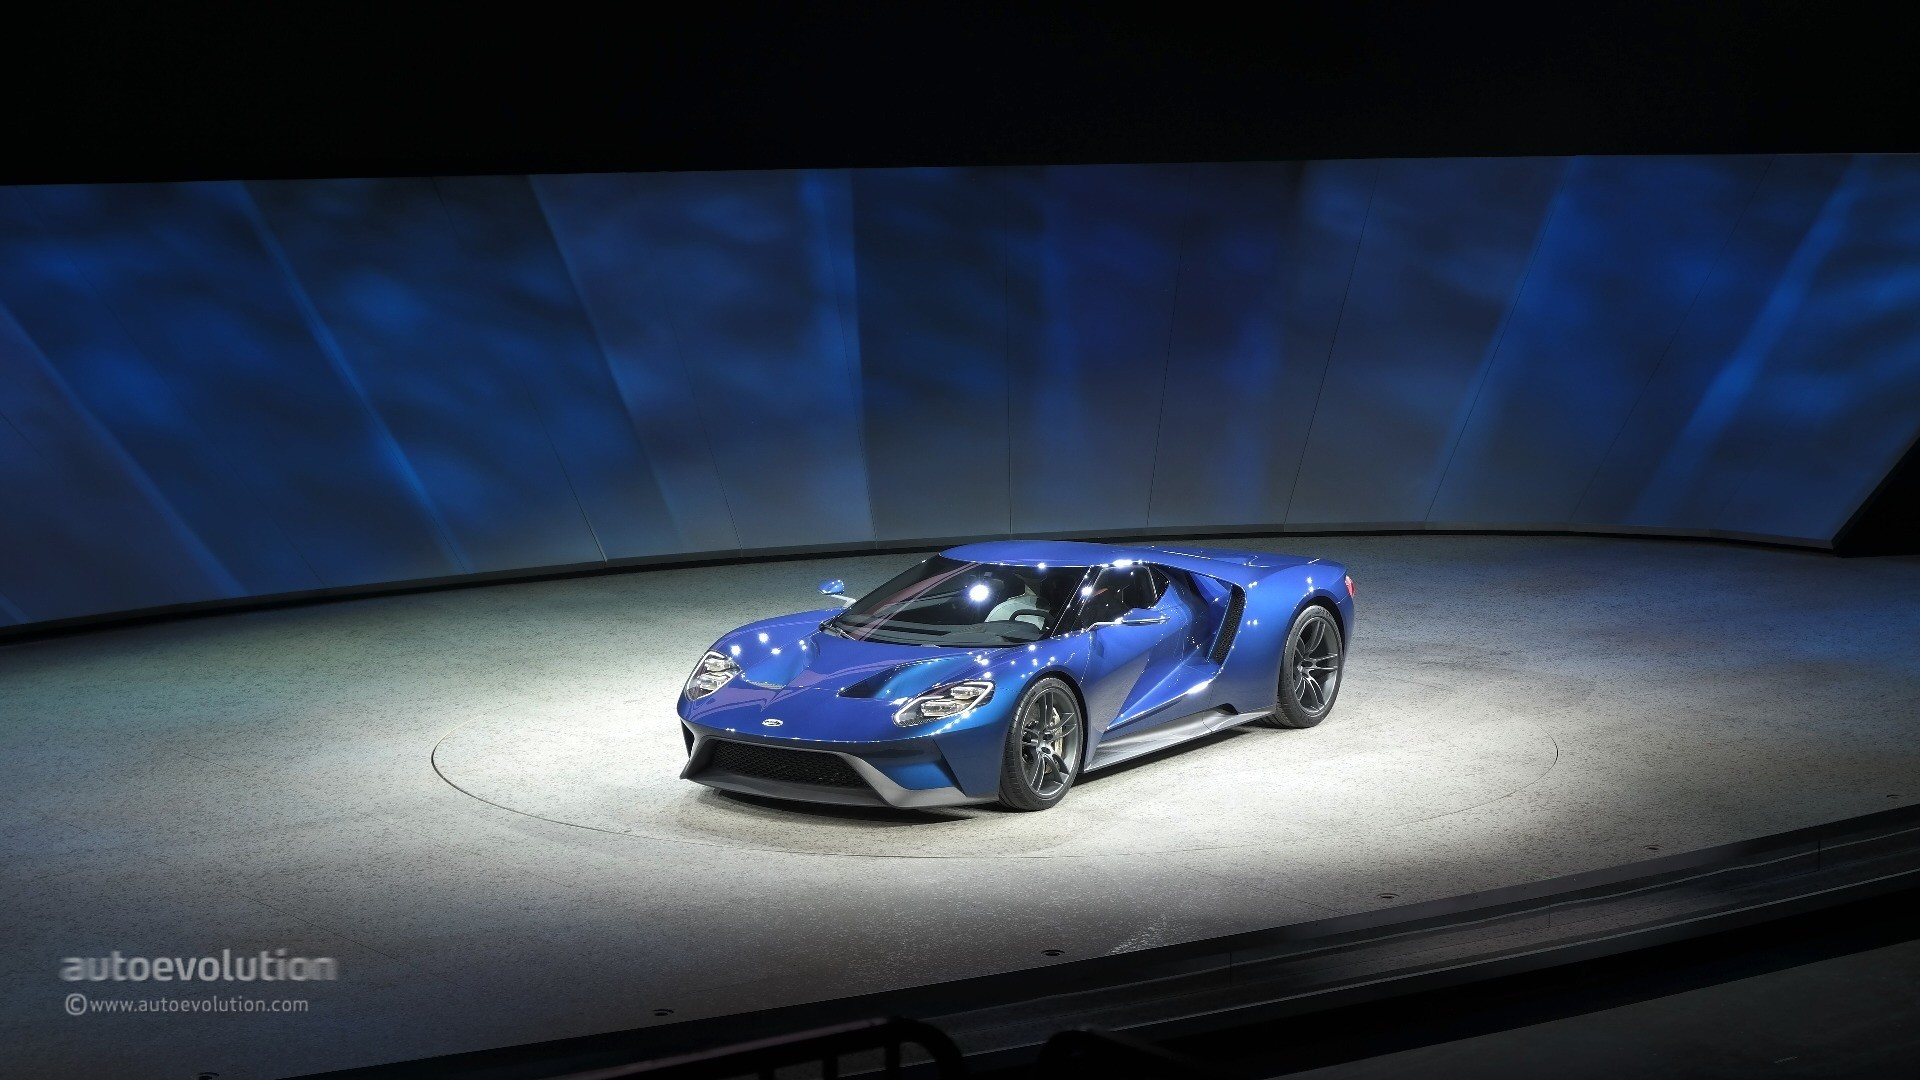 all new ford gt concept looks production ready has 600 hp v6 ecoboost live photos autoevolution - 2015 Ford Gt Auto Show